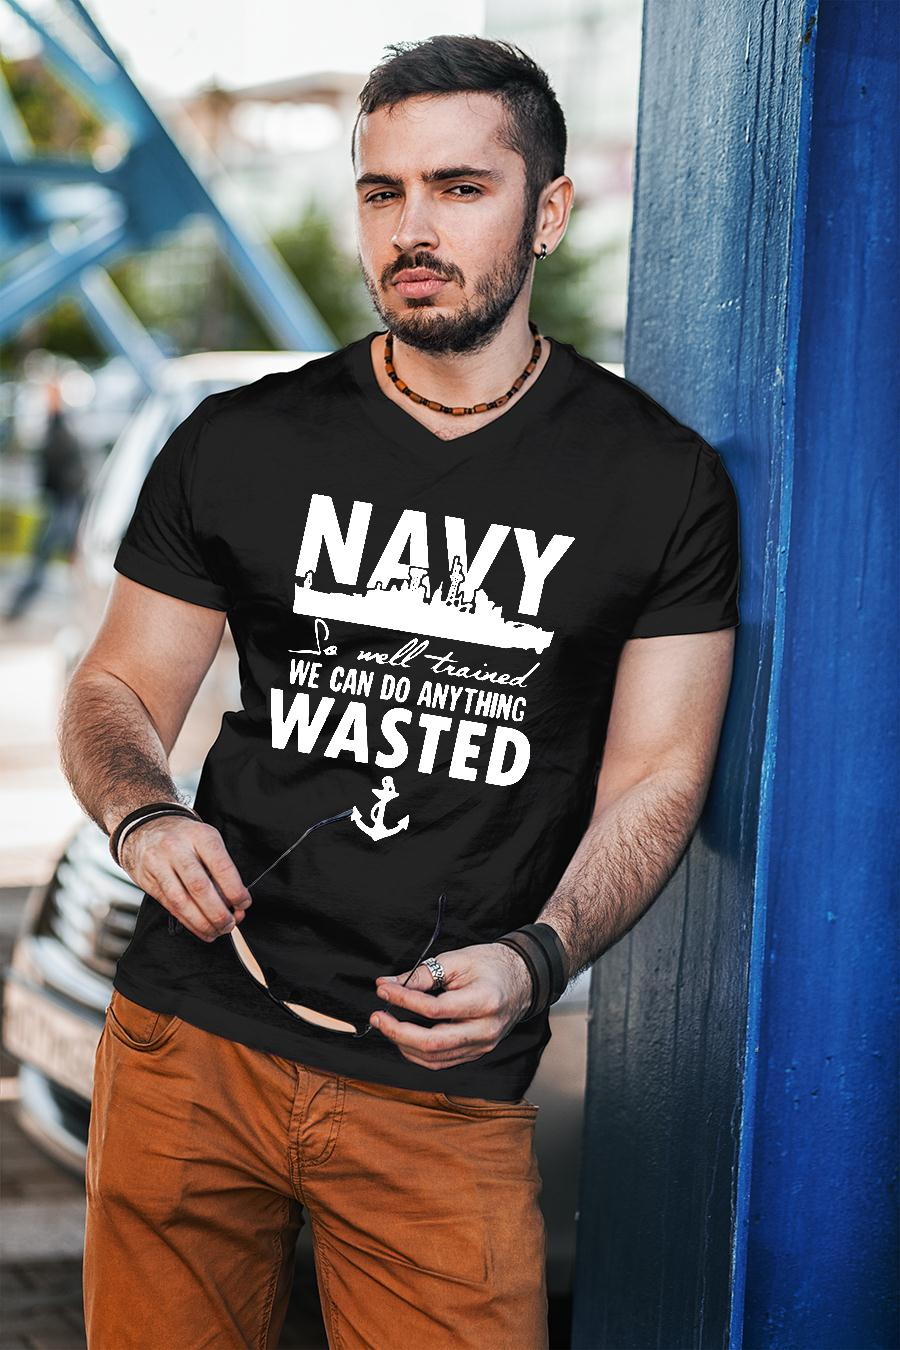 Navy so well trained we can do anything wasted shirt unisex